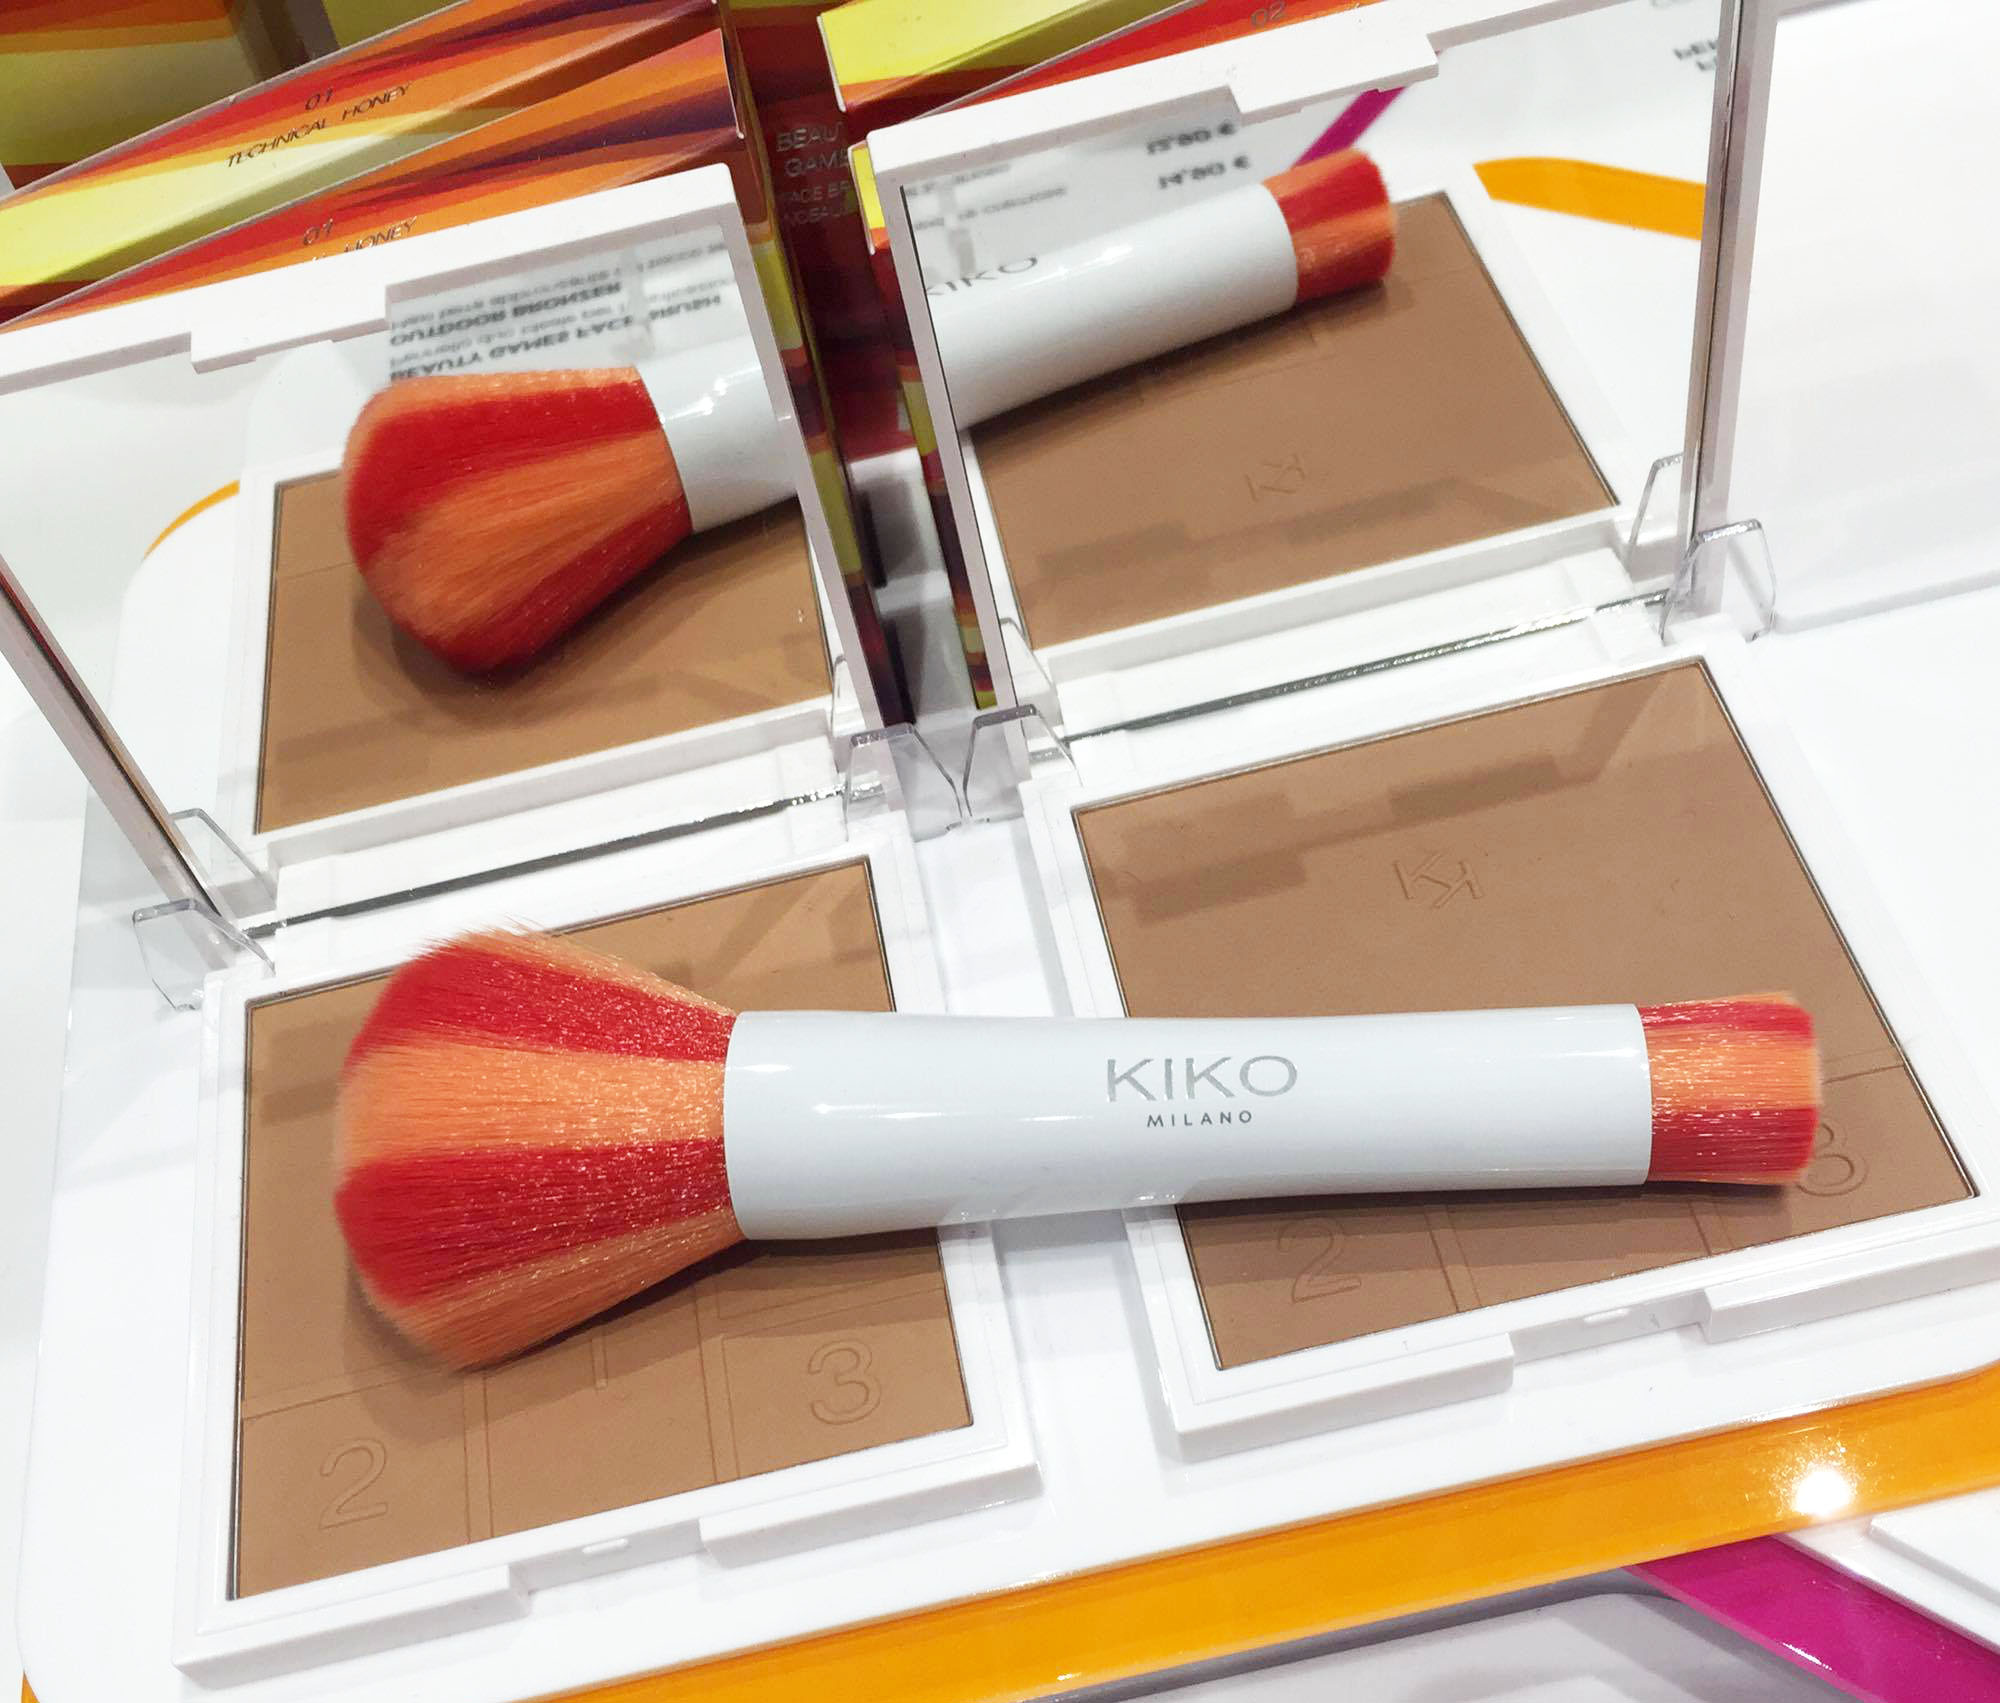 kiko prodotti make up estate 2016